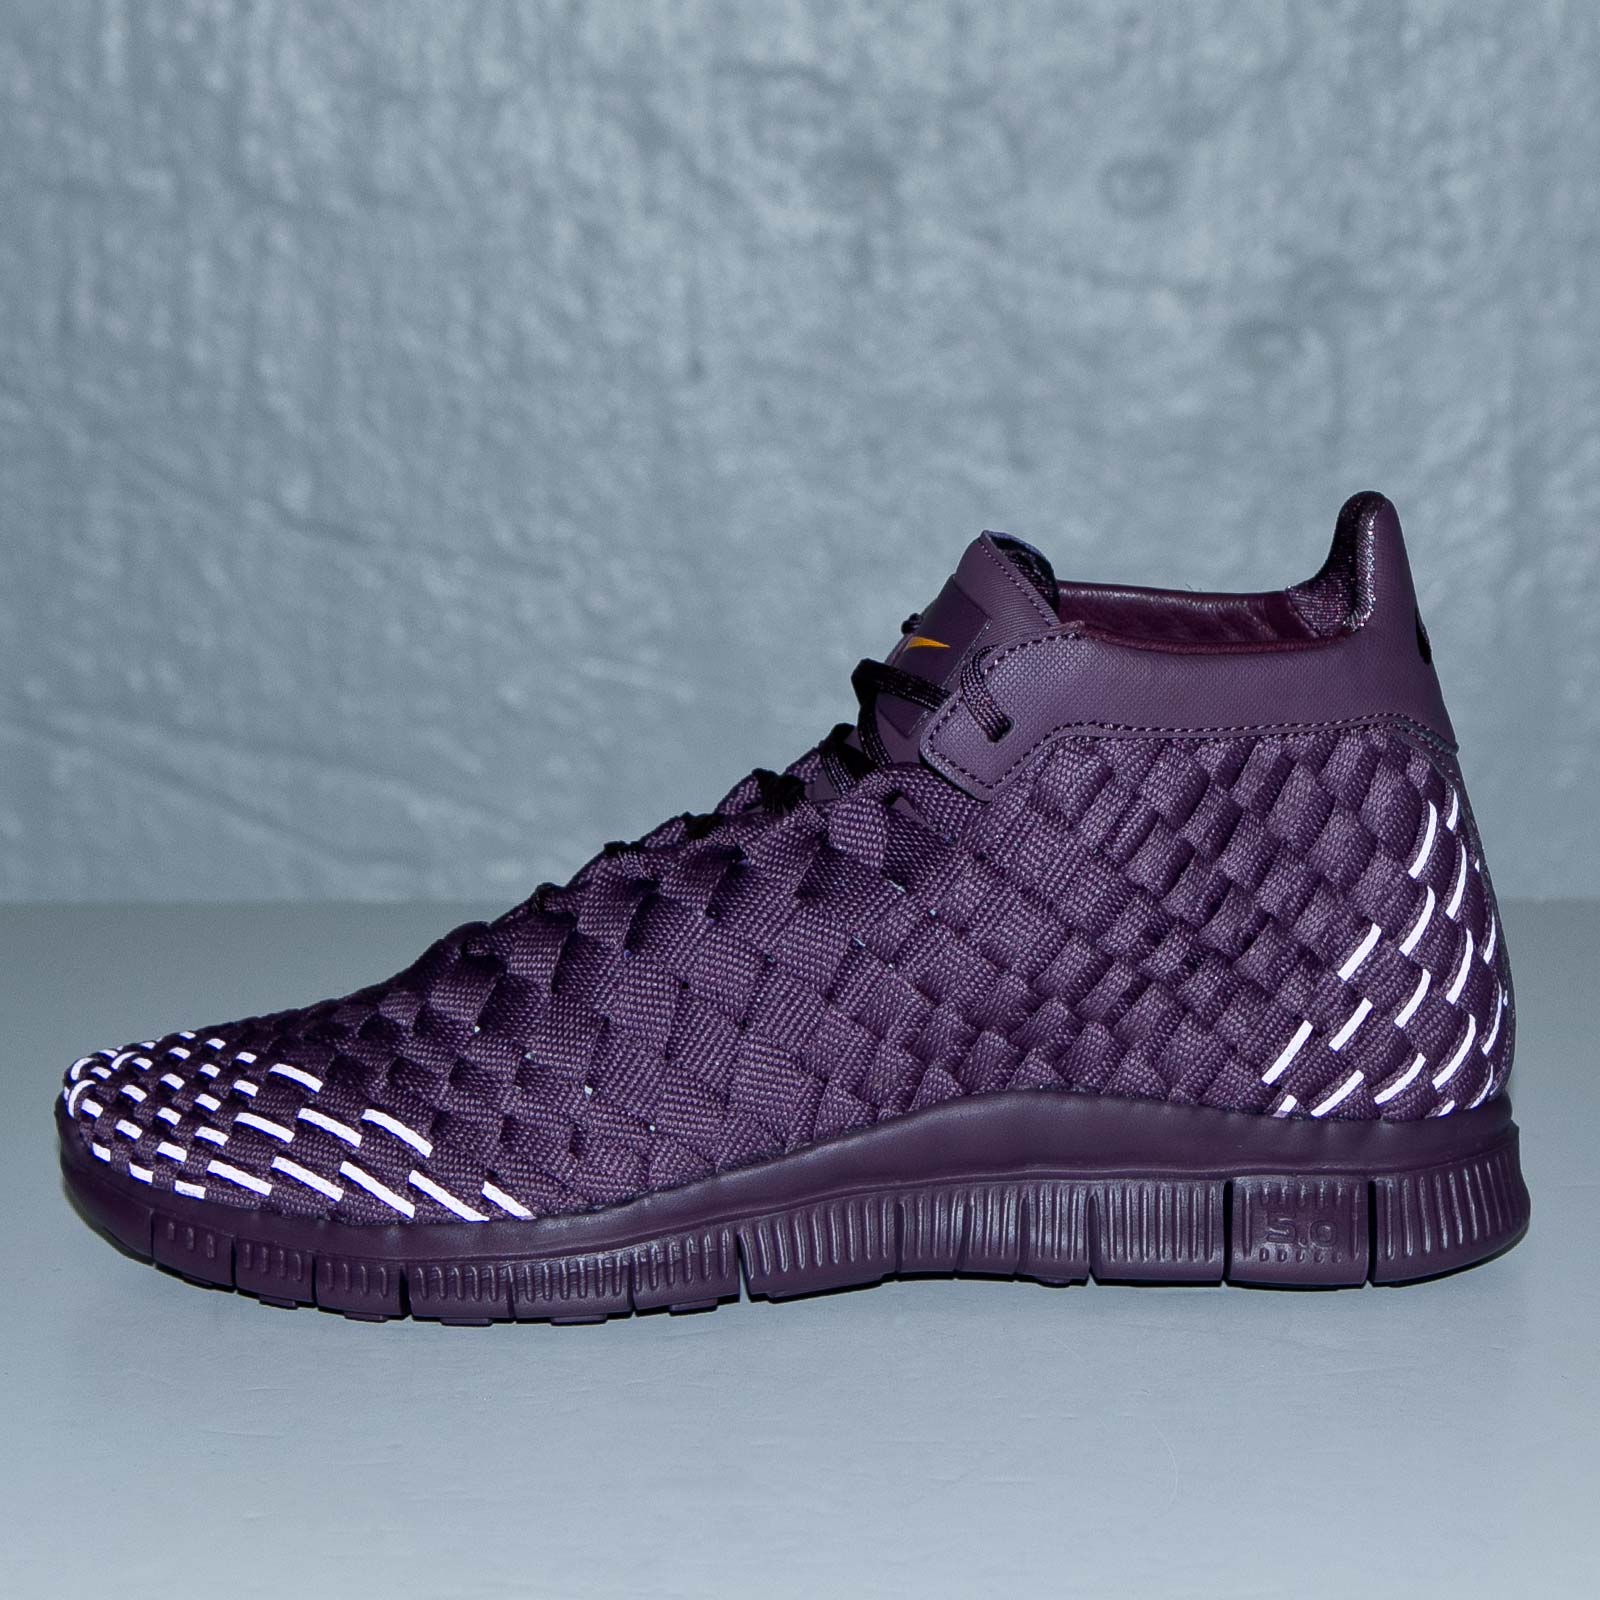 sneakers for cheap 4e497 41965 Nike Free Inneva Woven Mid SP - 800907-550 - Sneakersnstuff   sneakers    streetwear online since 1999